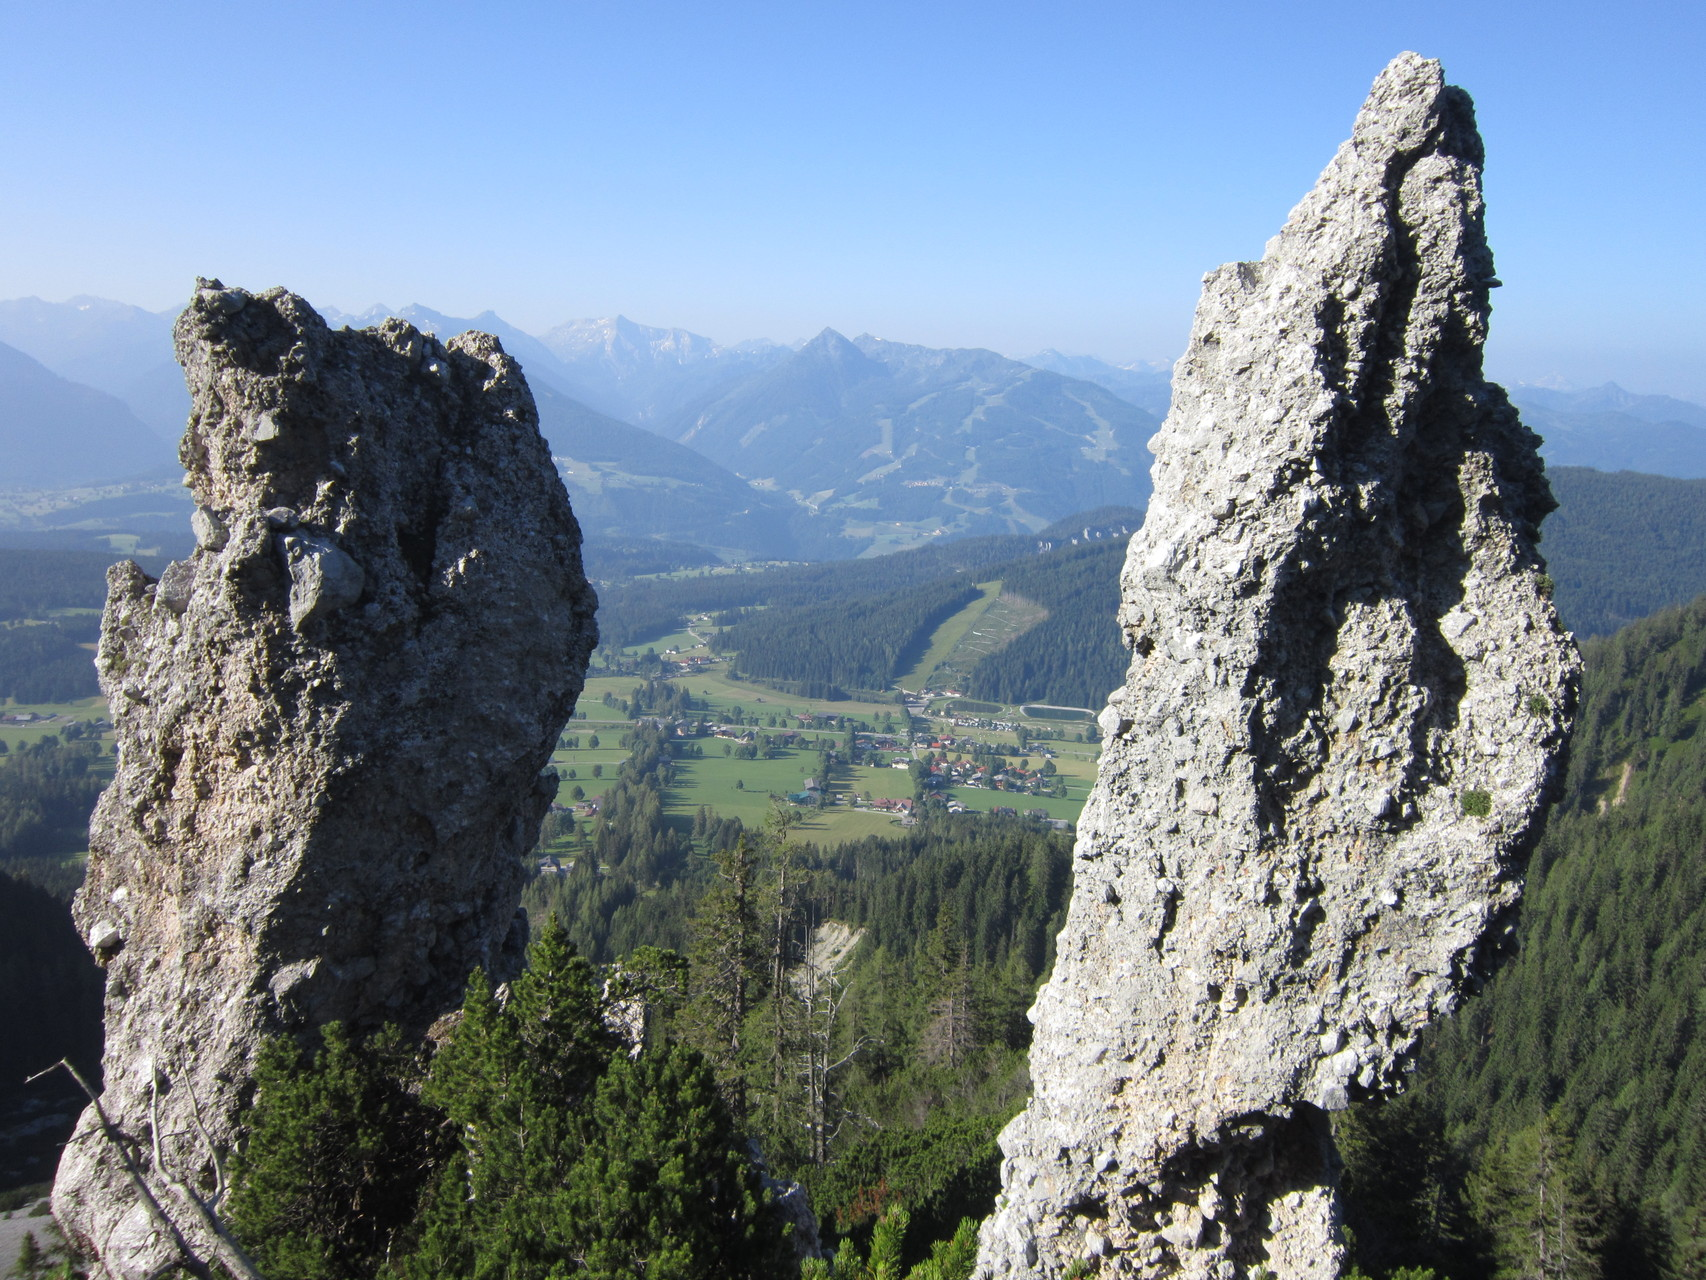 Hike on Jungfernsteig in the Ramsau